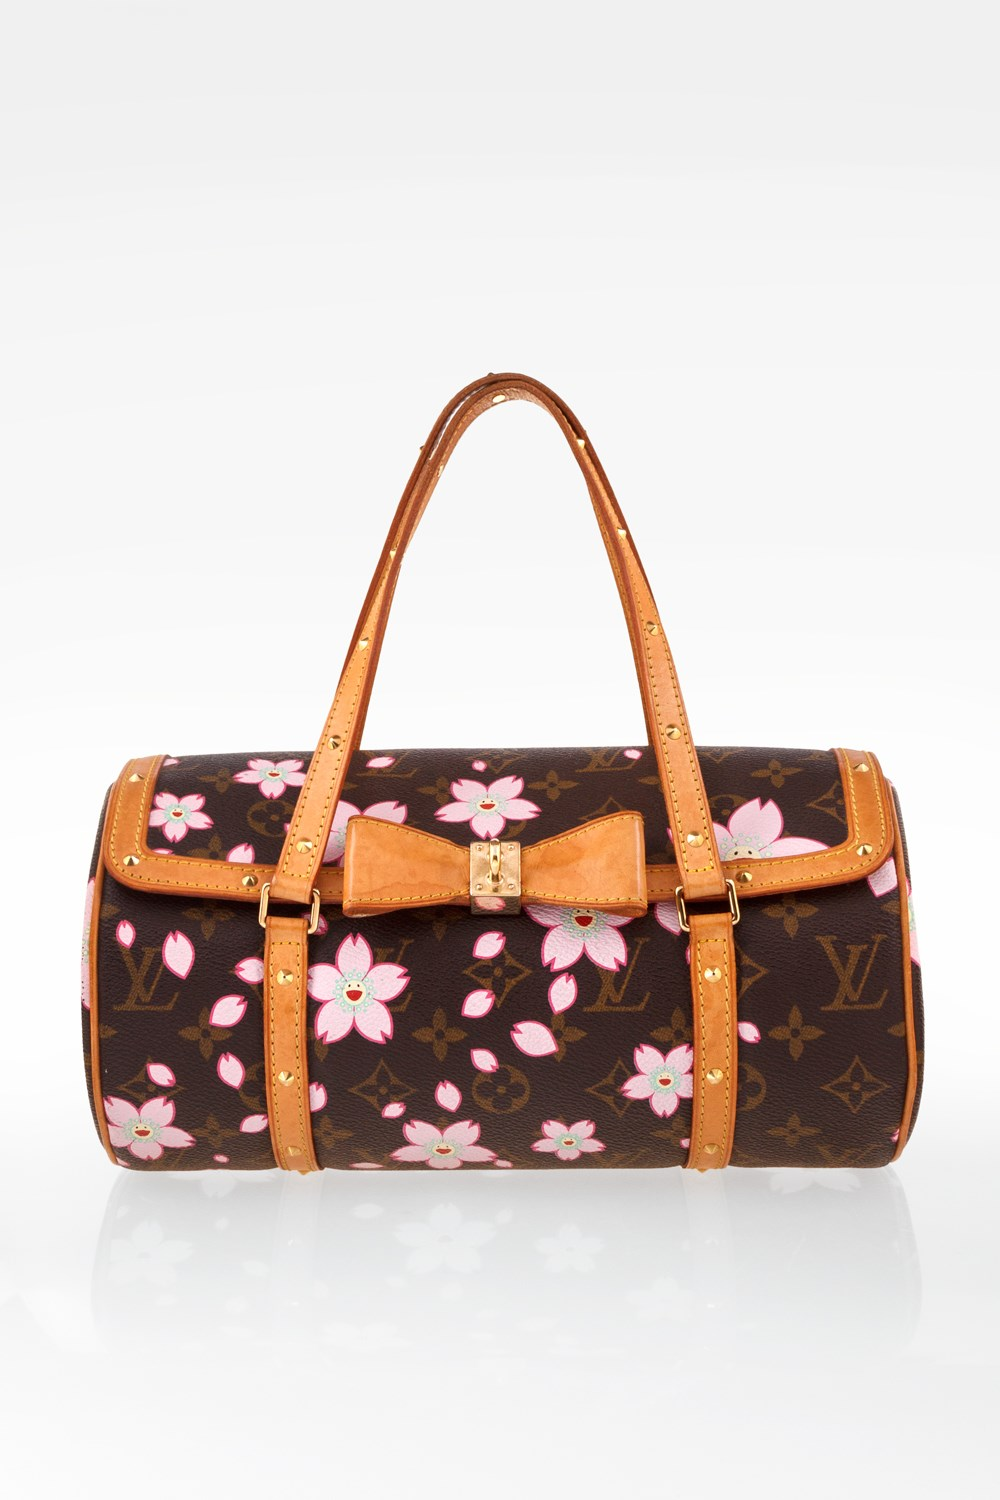 08f0609bc291 Brown Monogram Canvas Limited Edition Cherry Blossom Papillon Bag ...